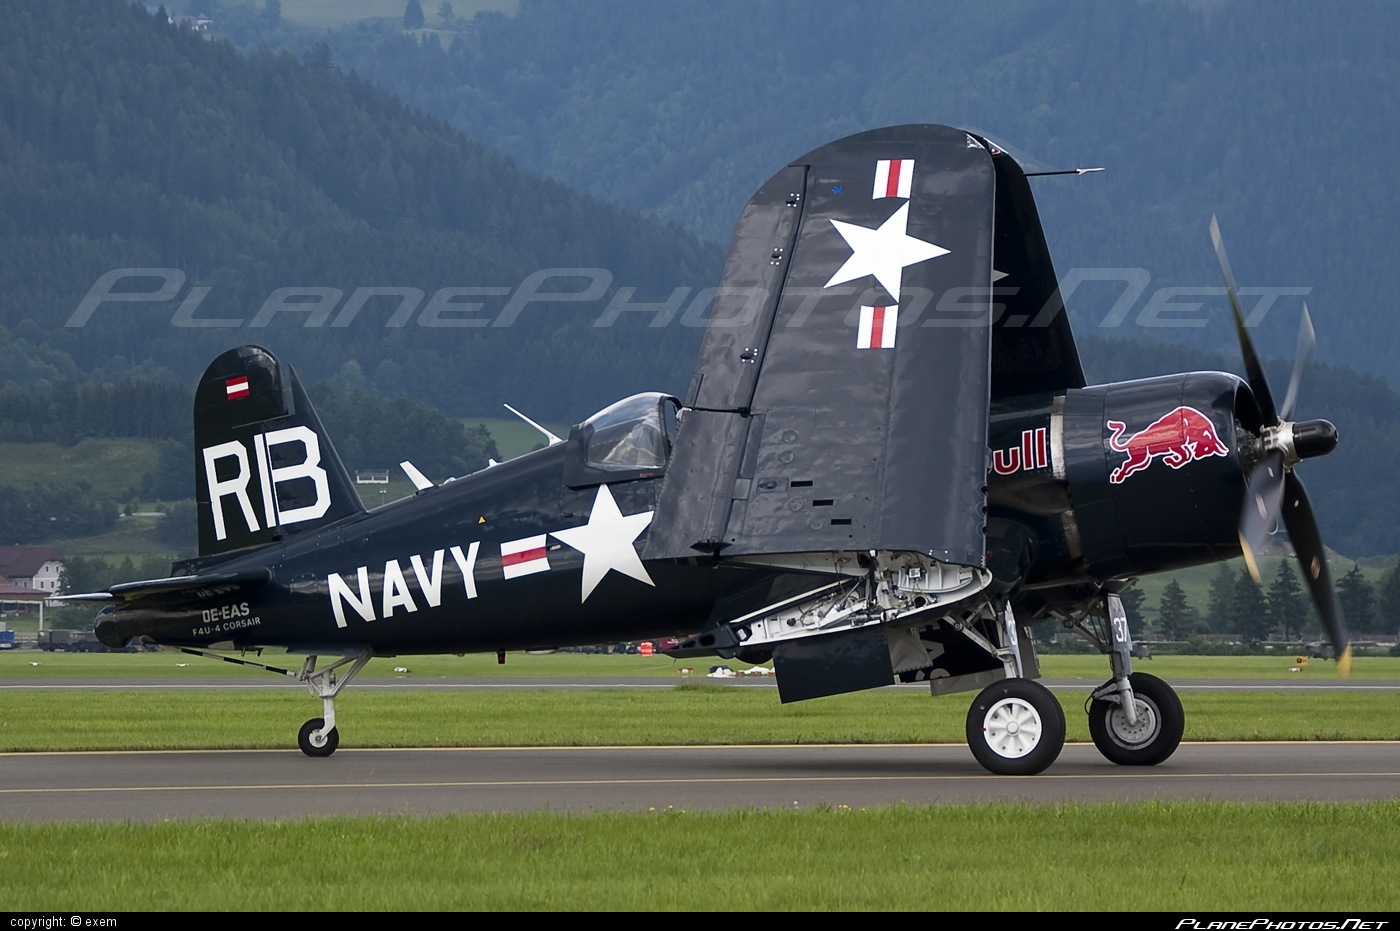 Vought F4U-4 Corsair - OE-EAS operated by The Flying Bulls #airpower #airpower2009 #corsair #theflyingbulls #vought